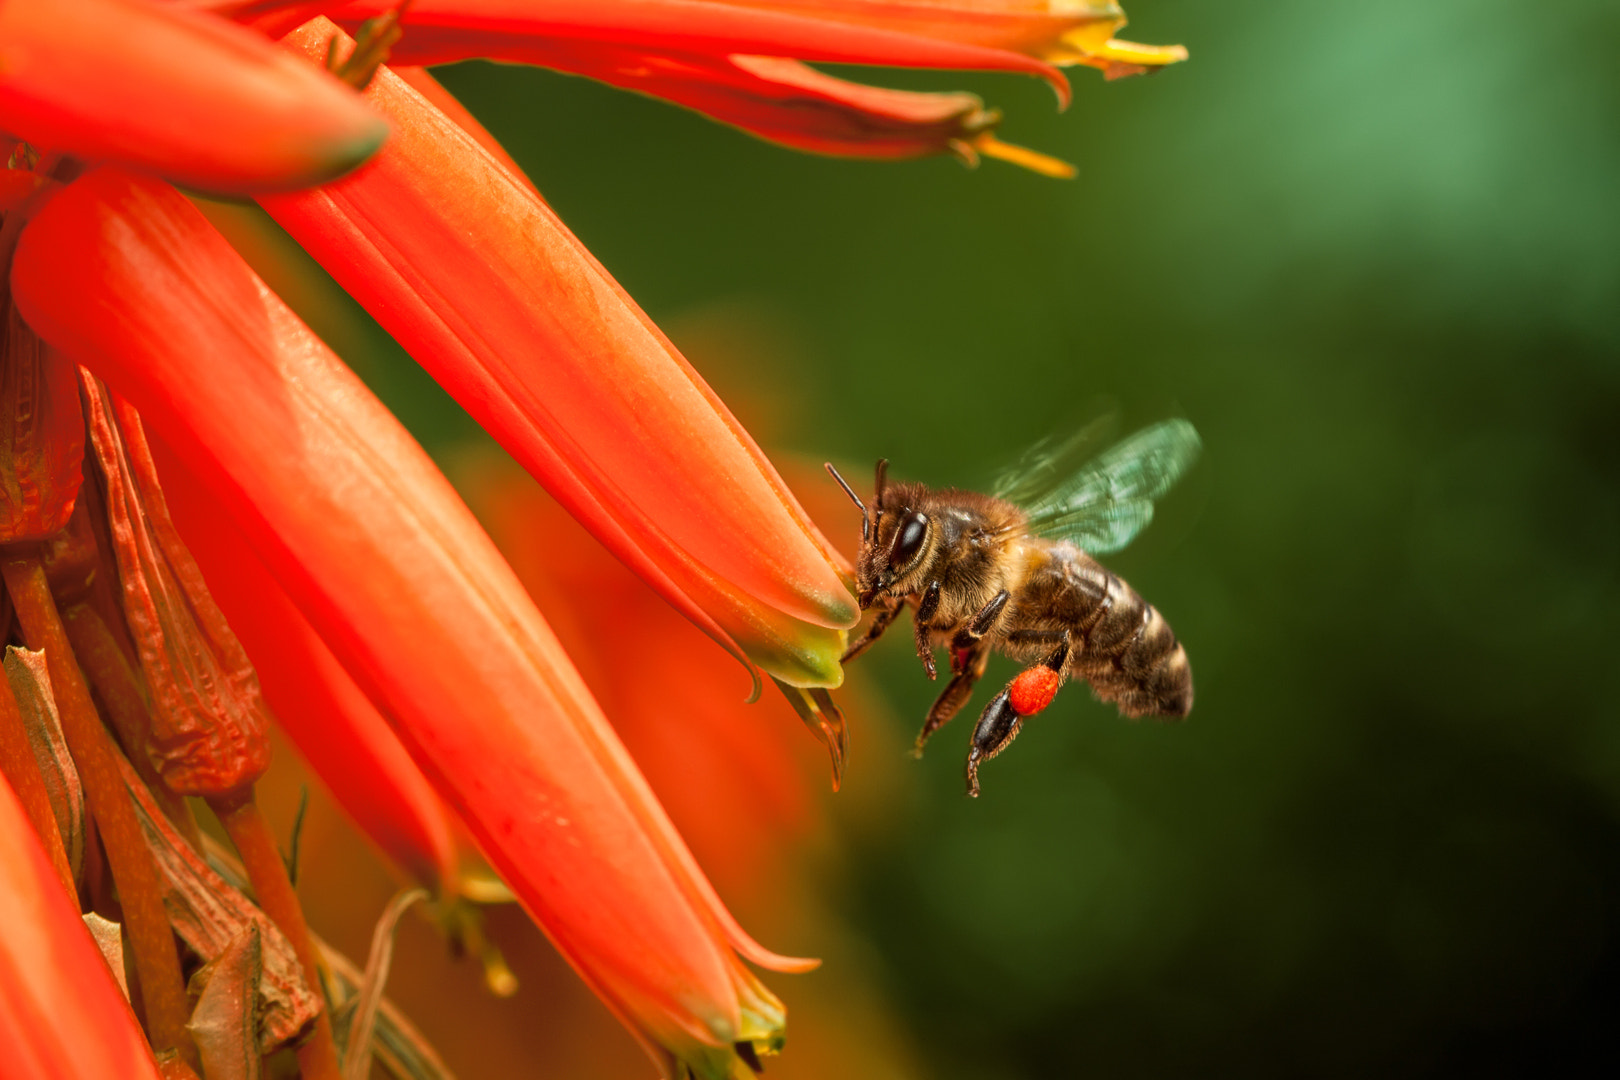 Photograph Im going to make red honey! by Andres Gutierrez on 500px